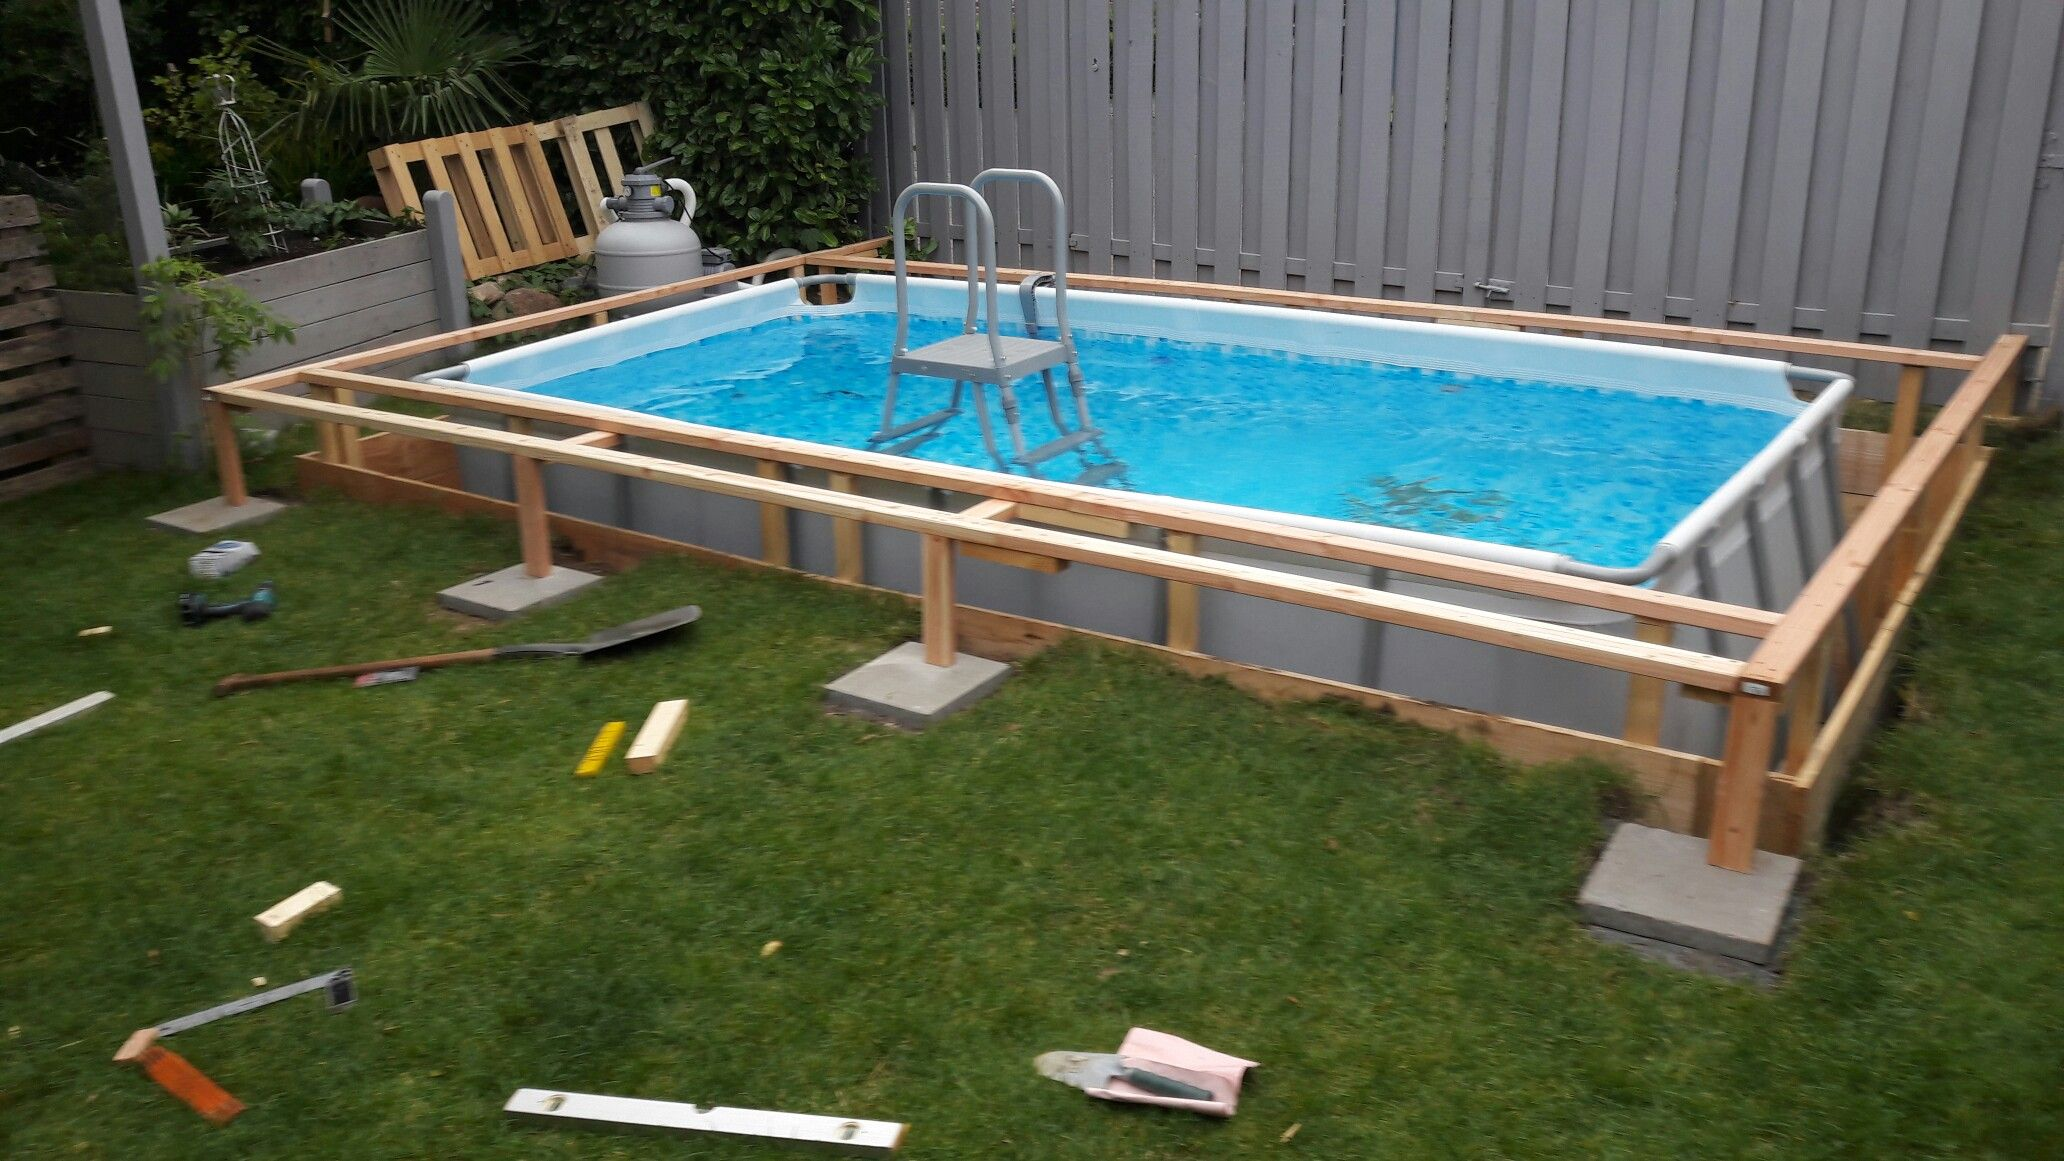 Pin by Audrey Kenney on Outdoors Diy swimming pool